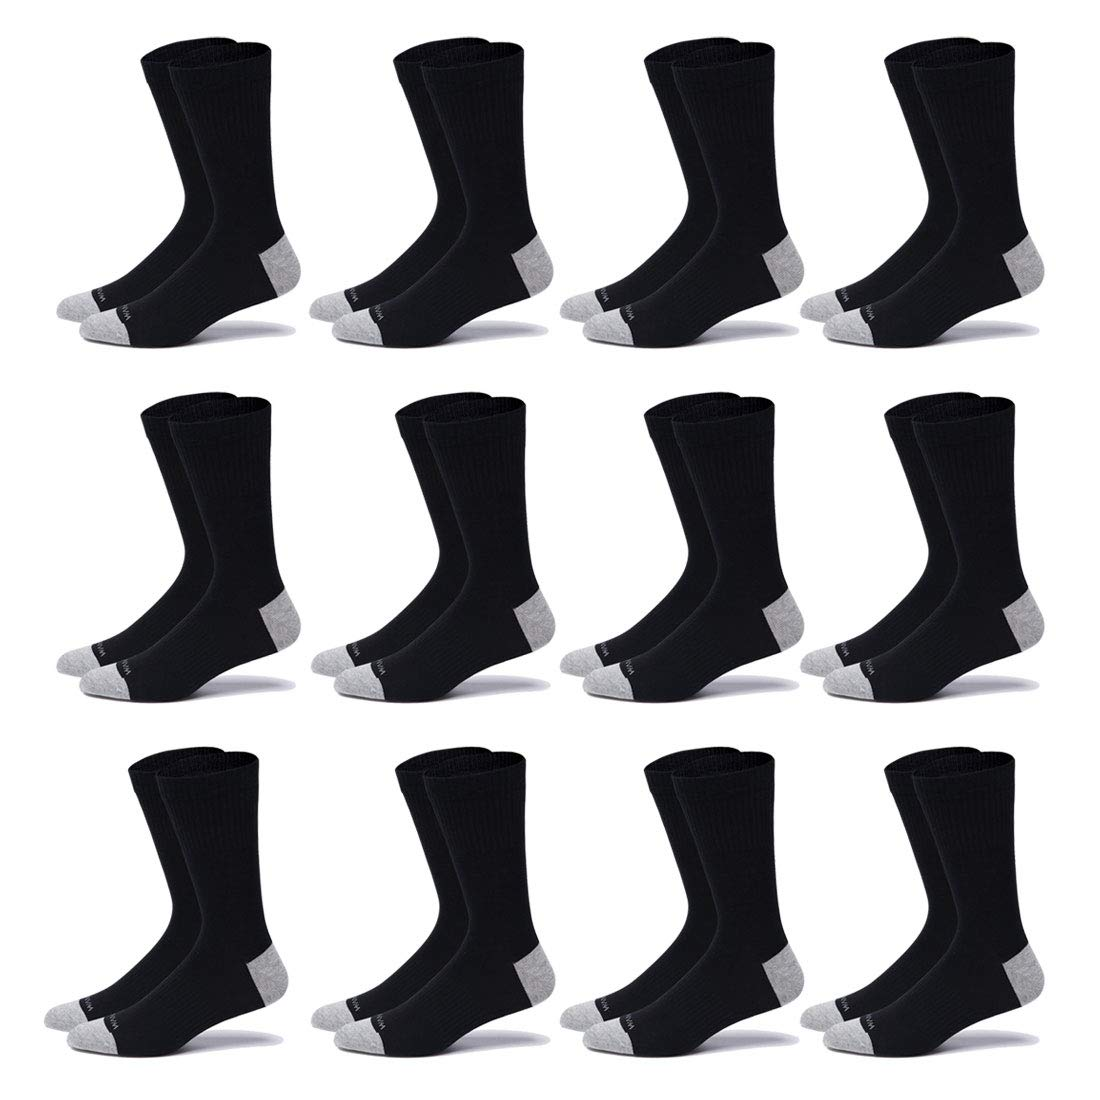 WANDER Tall Crew Socks Mens Thin Cotton 7-Pack/12-Pairs Casual Work Socks FIT 6-13